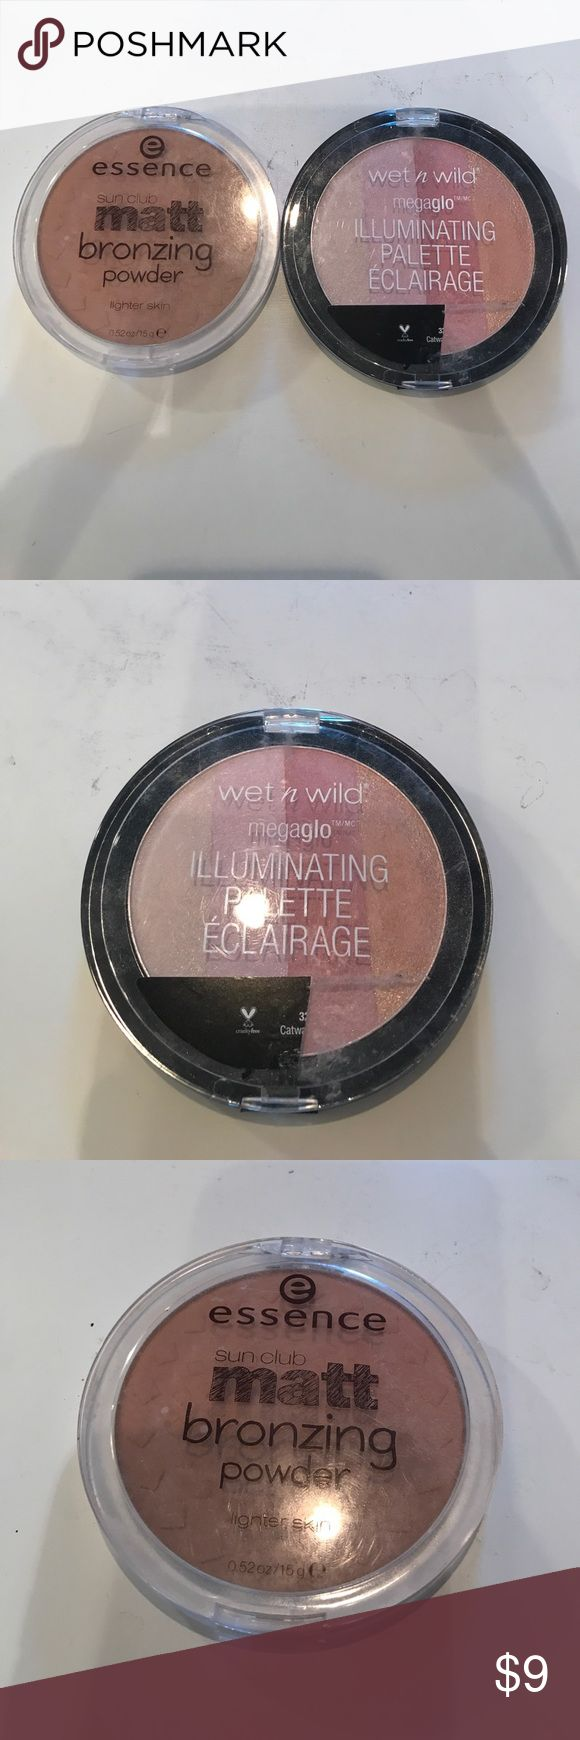 Bronzer and highlight duo #essence #sunclub #mattbronzer in lighter skin and #wetnwild #megaglo illuminating palette in #catwalkpink both are only tried once and in perfect condition!! you can't beat this deal! #makeup #sephora #ulta #jaclynhill #mac #lipstick #blush #fentybeauty #nailpolish #nyc #manhattan #hamptons #glam #beauty #fashion #nyfw wet n wild Makeup Luminizer